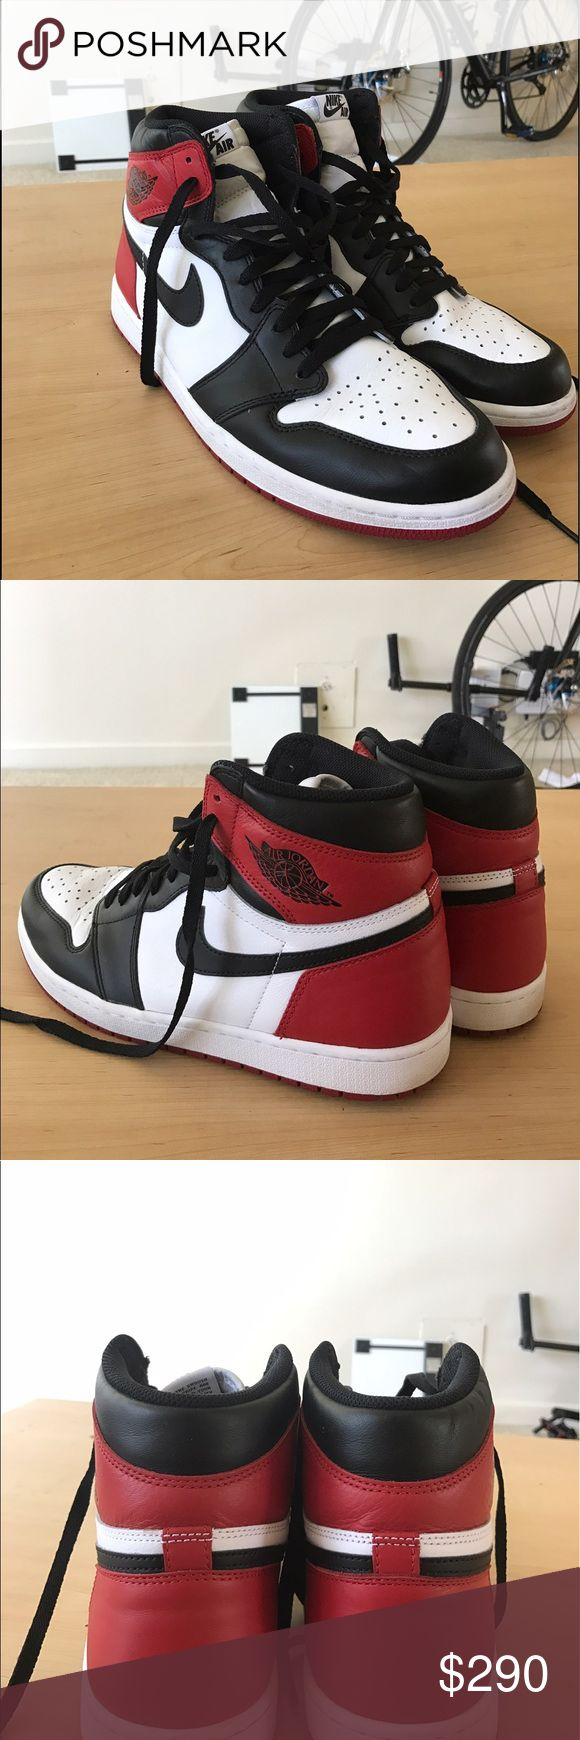 Jordan 1 Black Toe Size 11 Worn once. Perfect condition. Don't low ball me. Air Jordan Shoes Athletic Shoes